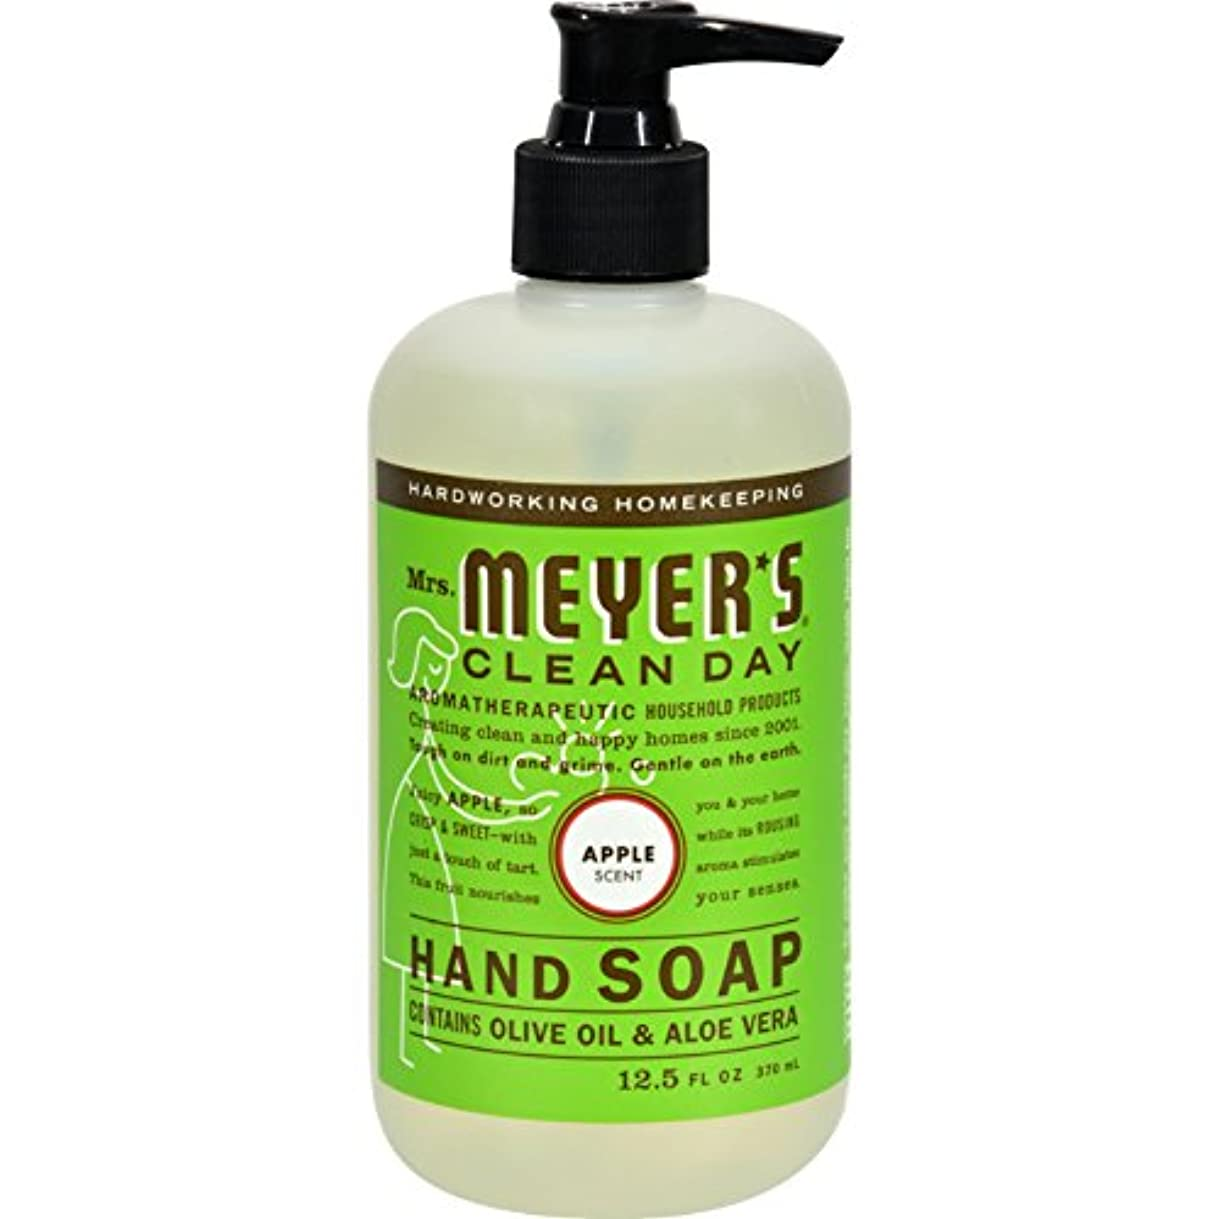 メタルライン同封するフェザーLiquid Hand Soap - Apple - Case of 6 - 12.5 oz by Mrs. Meyer's